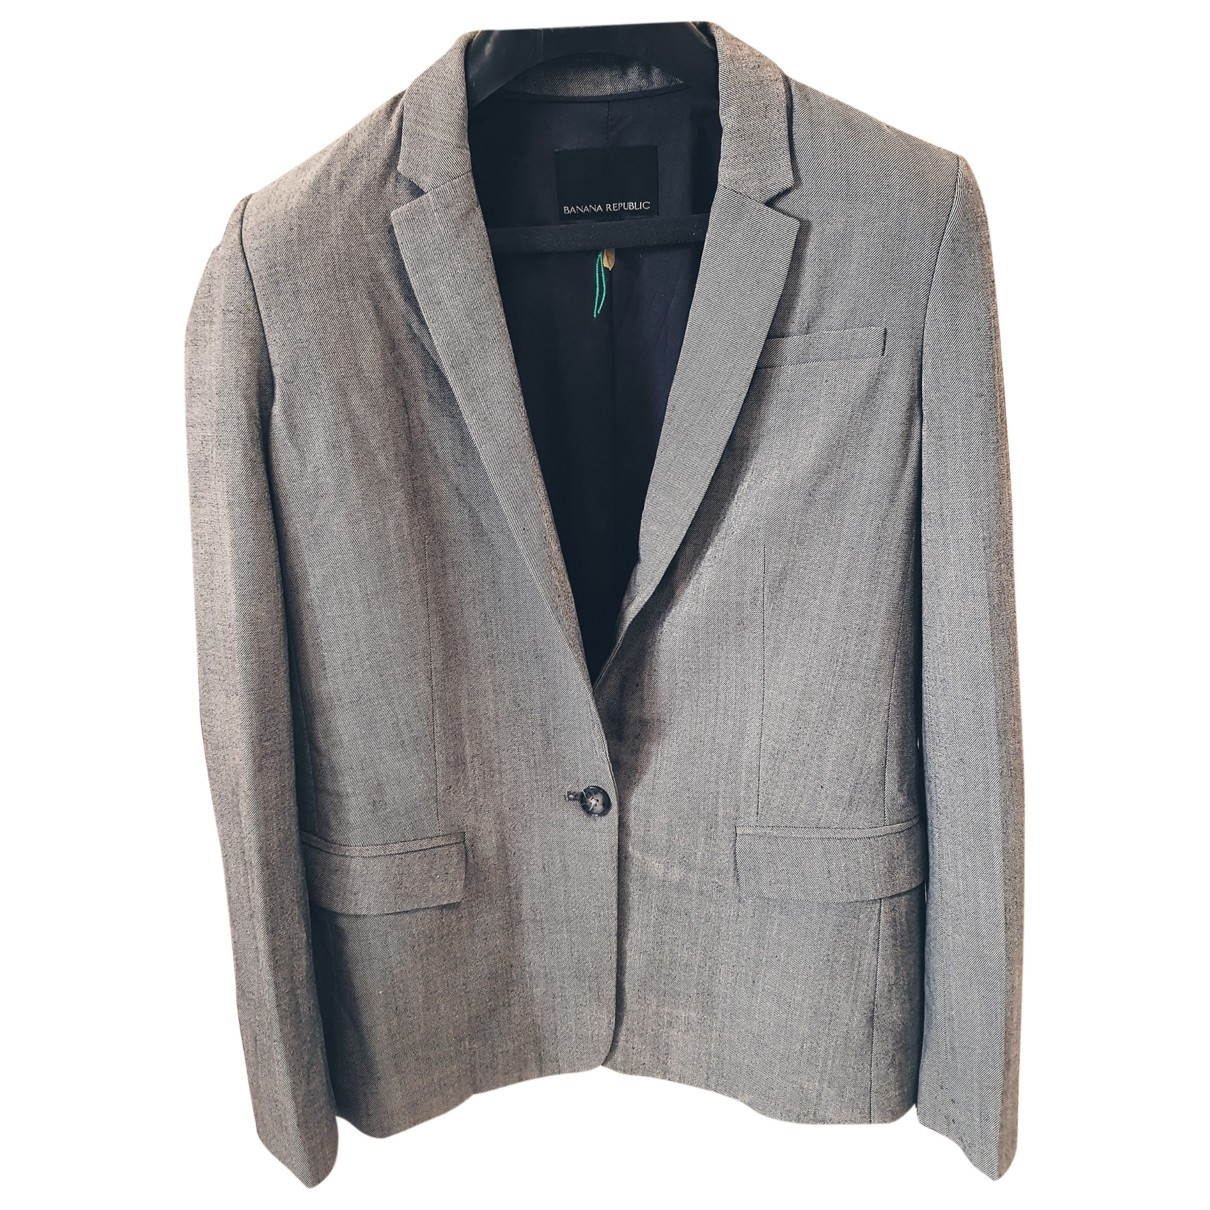 Banana Republic \N Grey Wool jacket for Women 36 FR